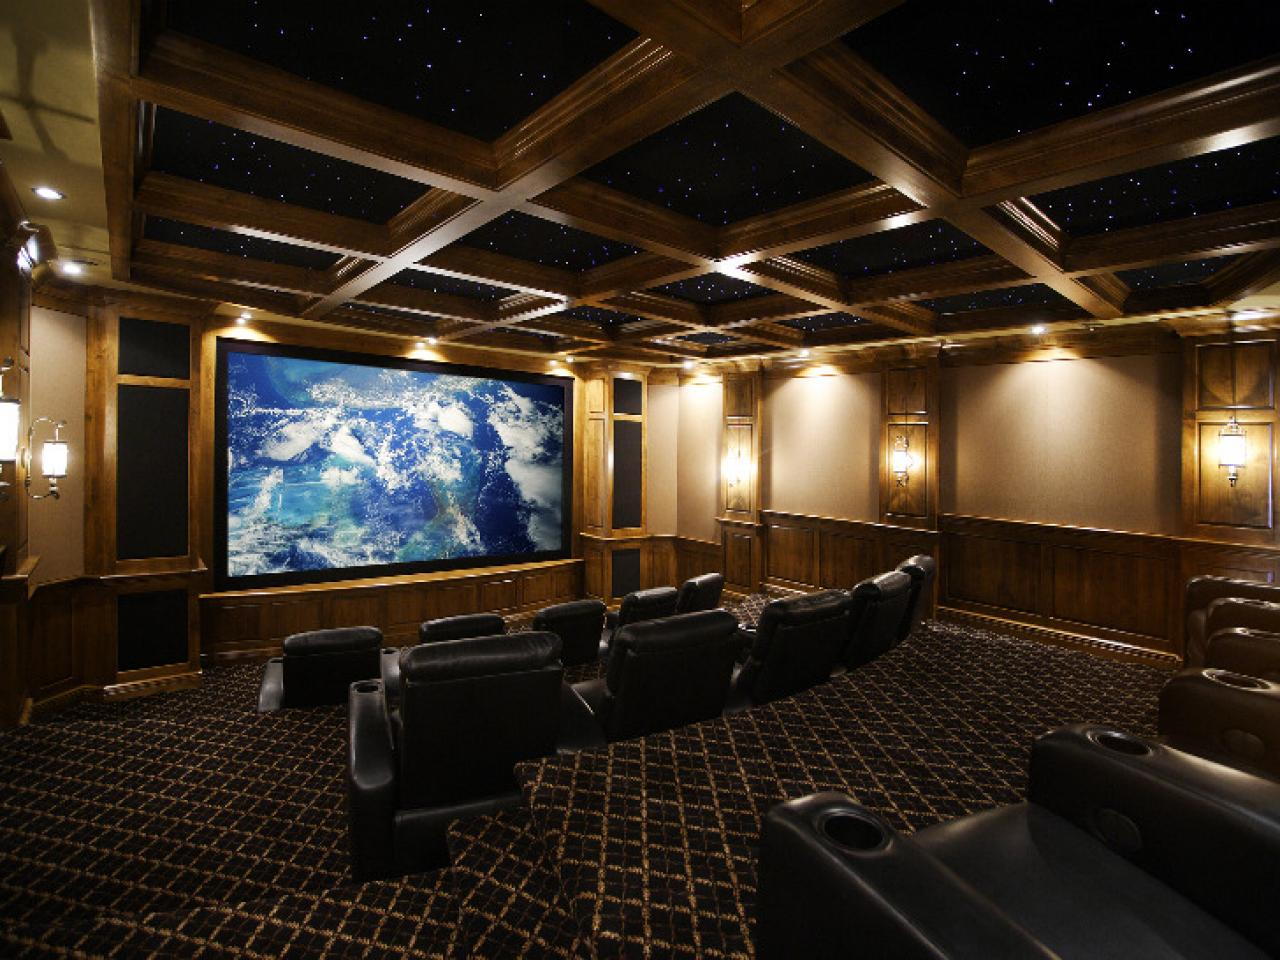 Basement Home Theaters and Media Rooms: Pictures, Tips \u0026 Ideas | HGTV